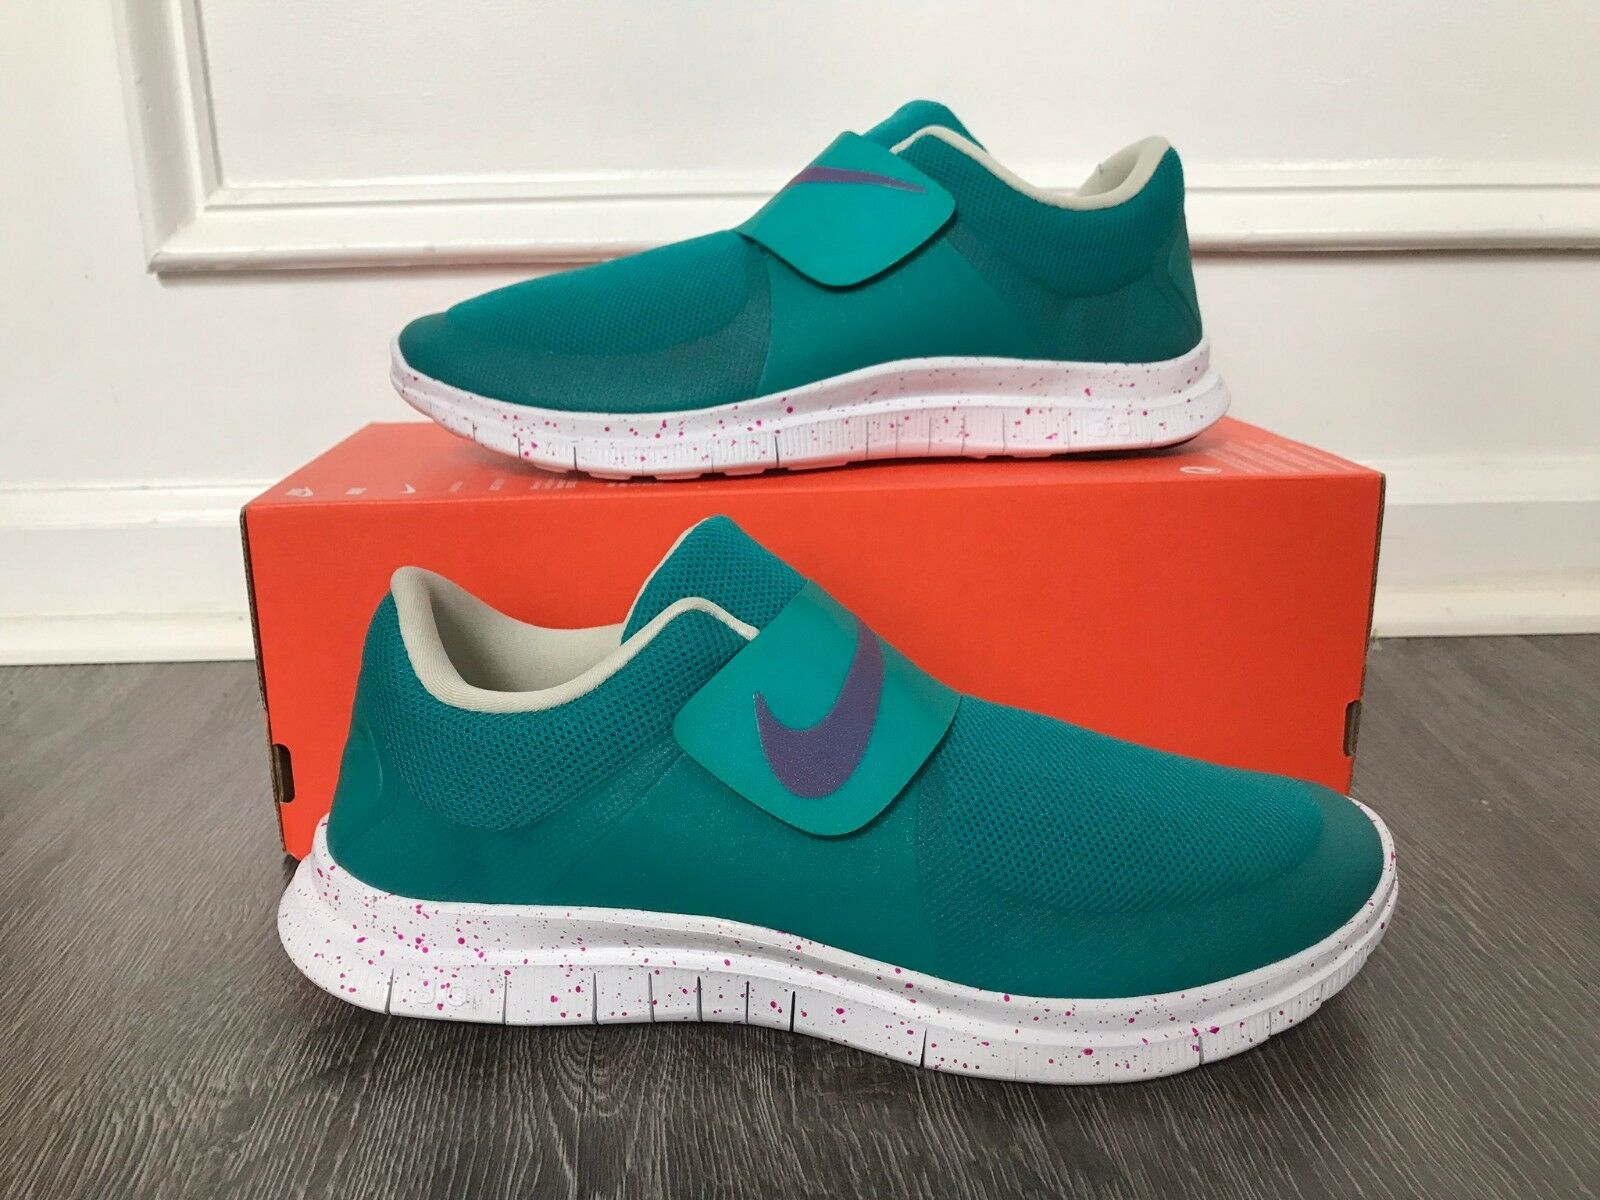 Nike Free Sockfly  Sample  Teal Purple Running shoes shoes shoes 724851-305 Men's 10 NEW 6e4eef